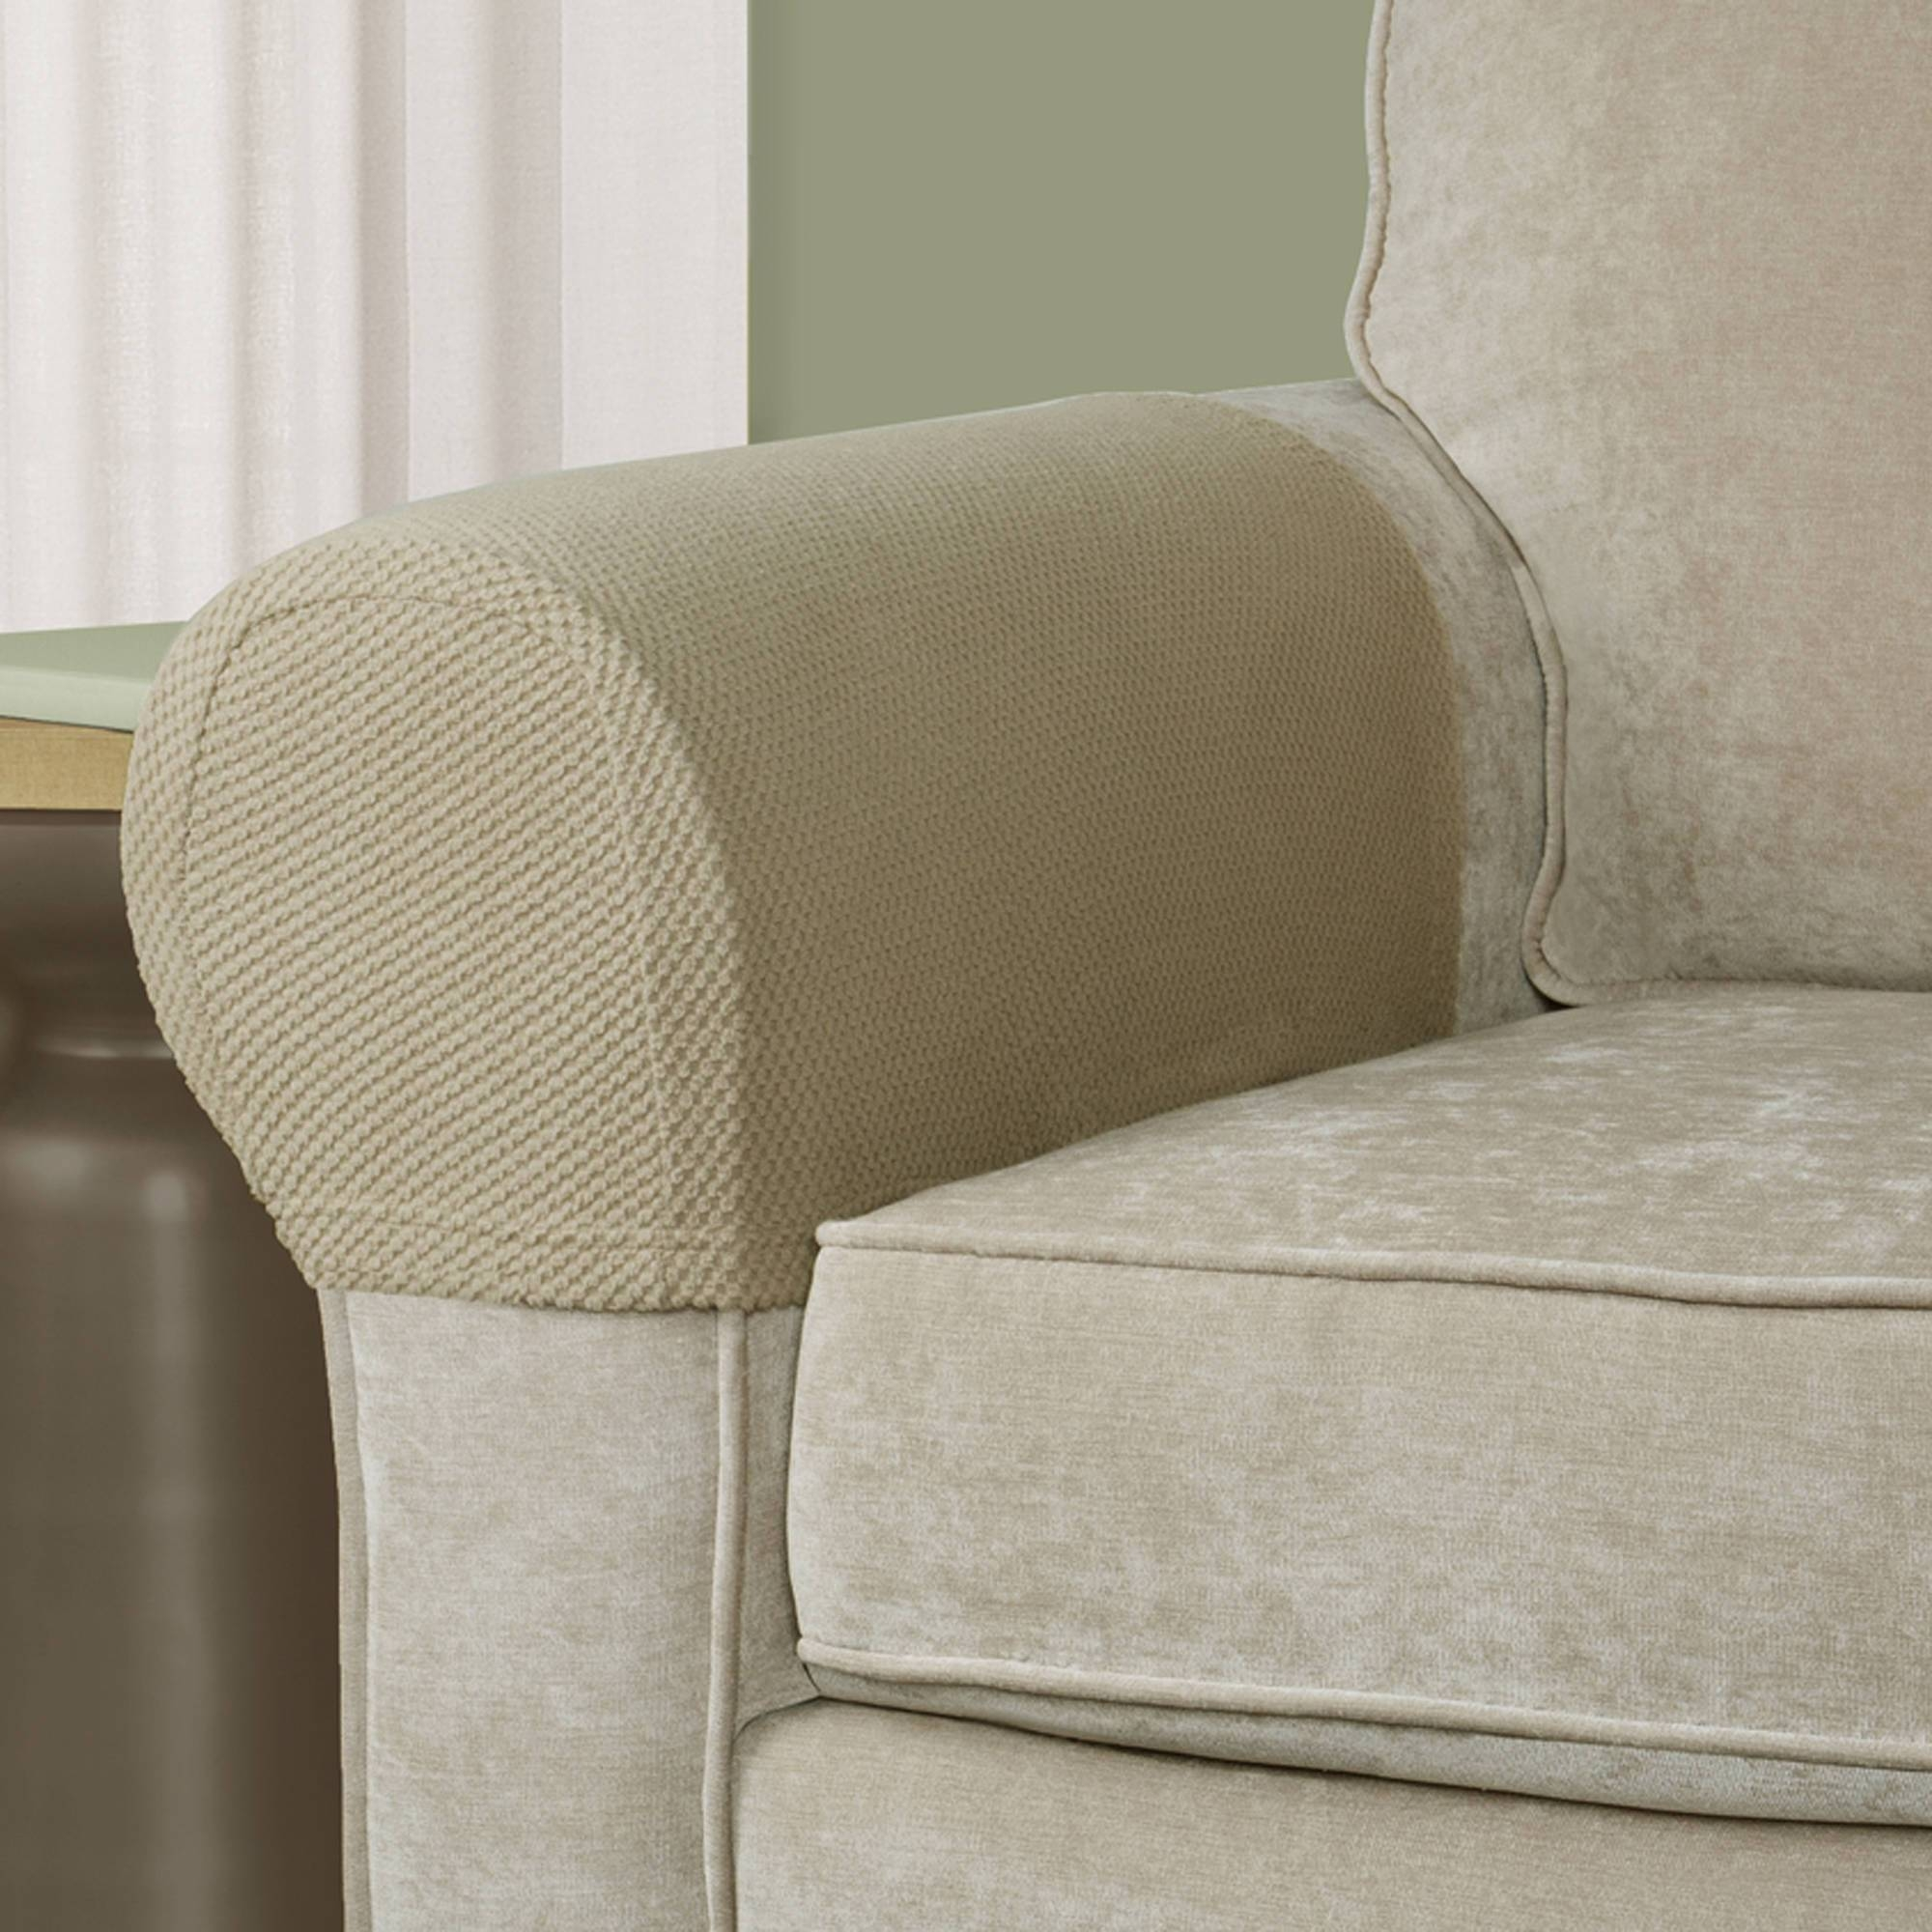 Arm Covers For Sofas And Chairs | Sofas Decoration inside Covers For Sofas And Chairs (Image 1 of 15)